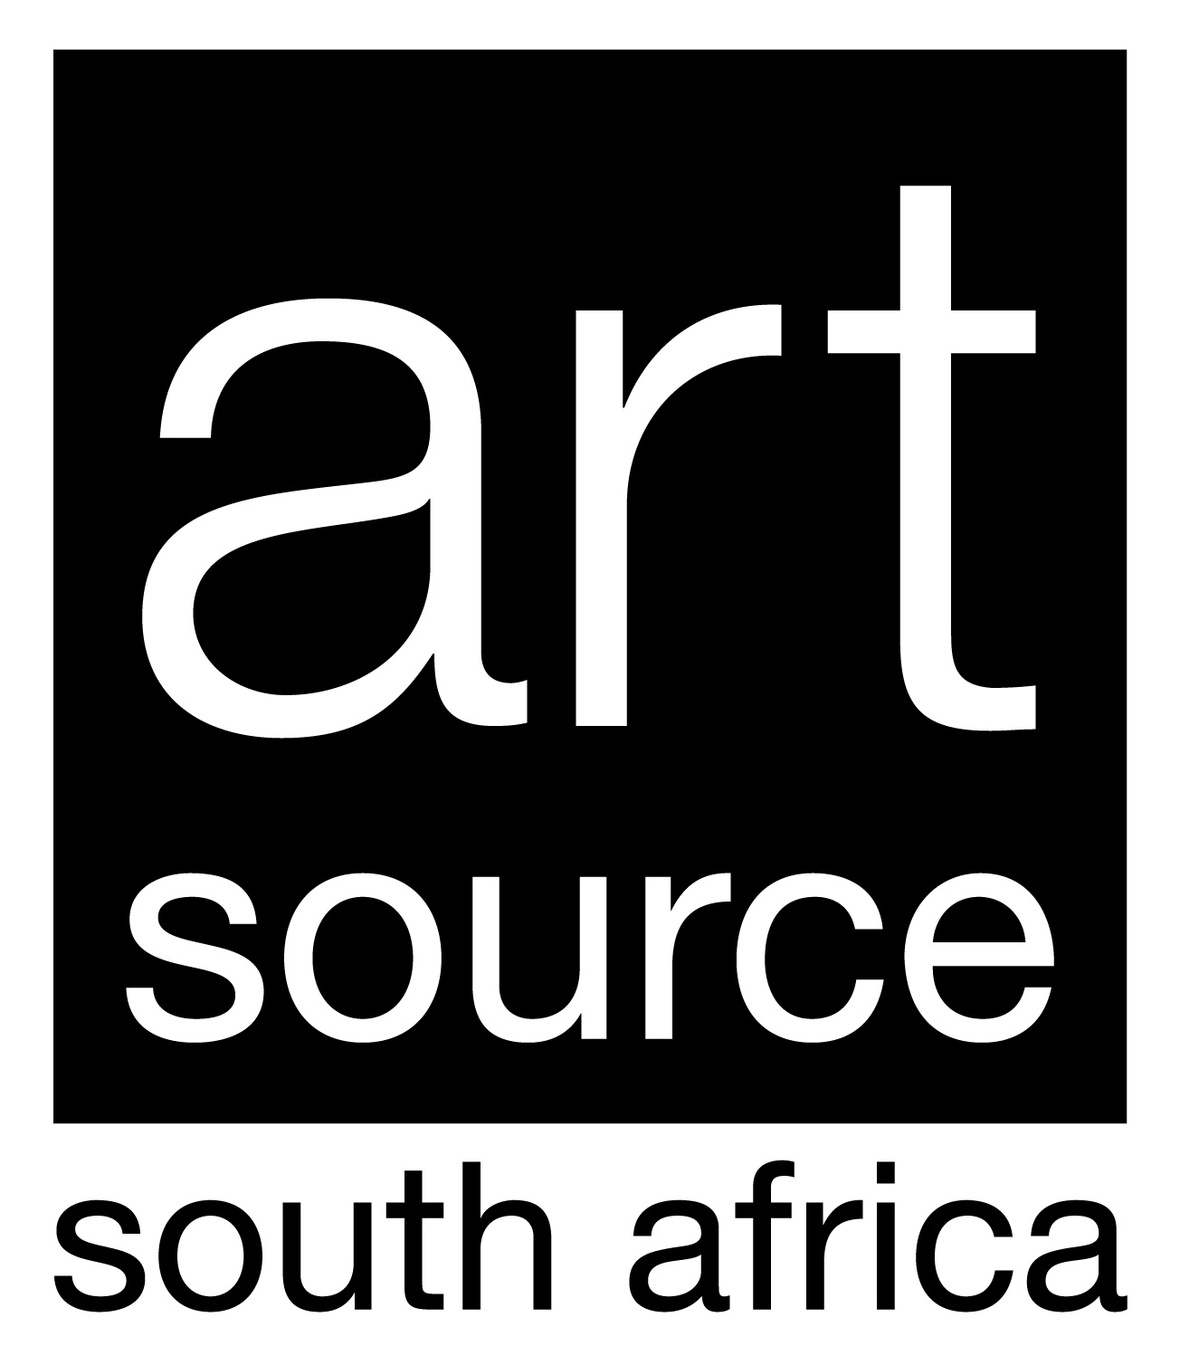 art cource logo